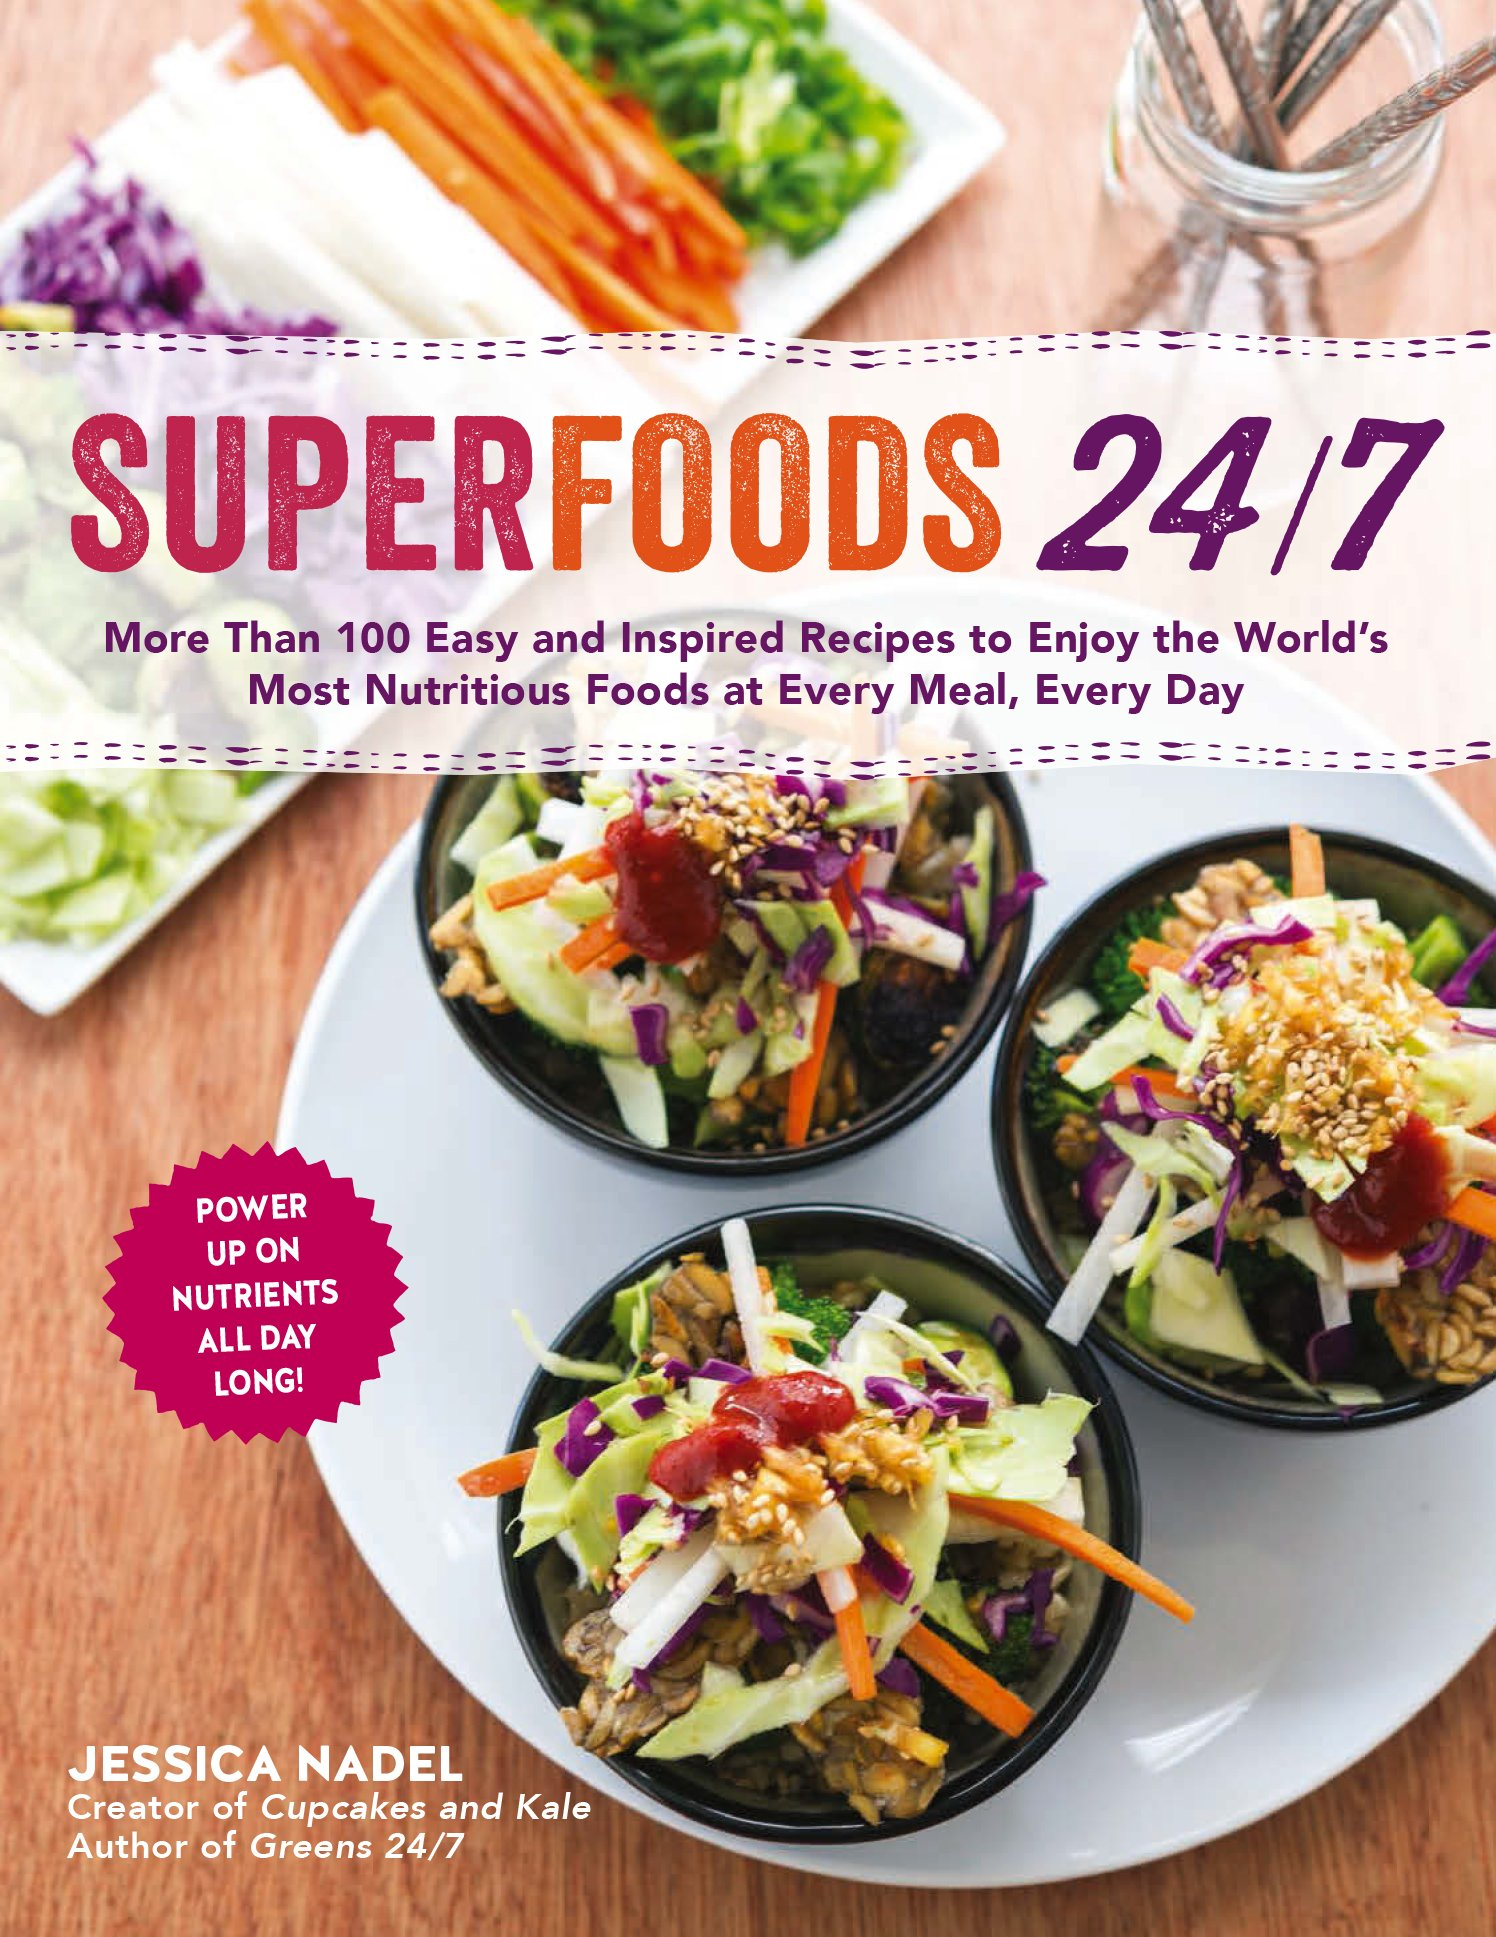 Superfoods 24 7 More Than 100 Easy And Inspired Recipes To Enjoy The Worlds Most Nutritious Foods At Every Meal Day Jessica Nadel 9781615192786